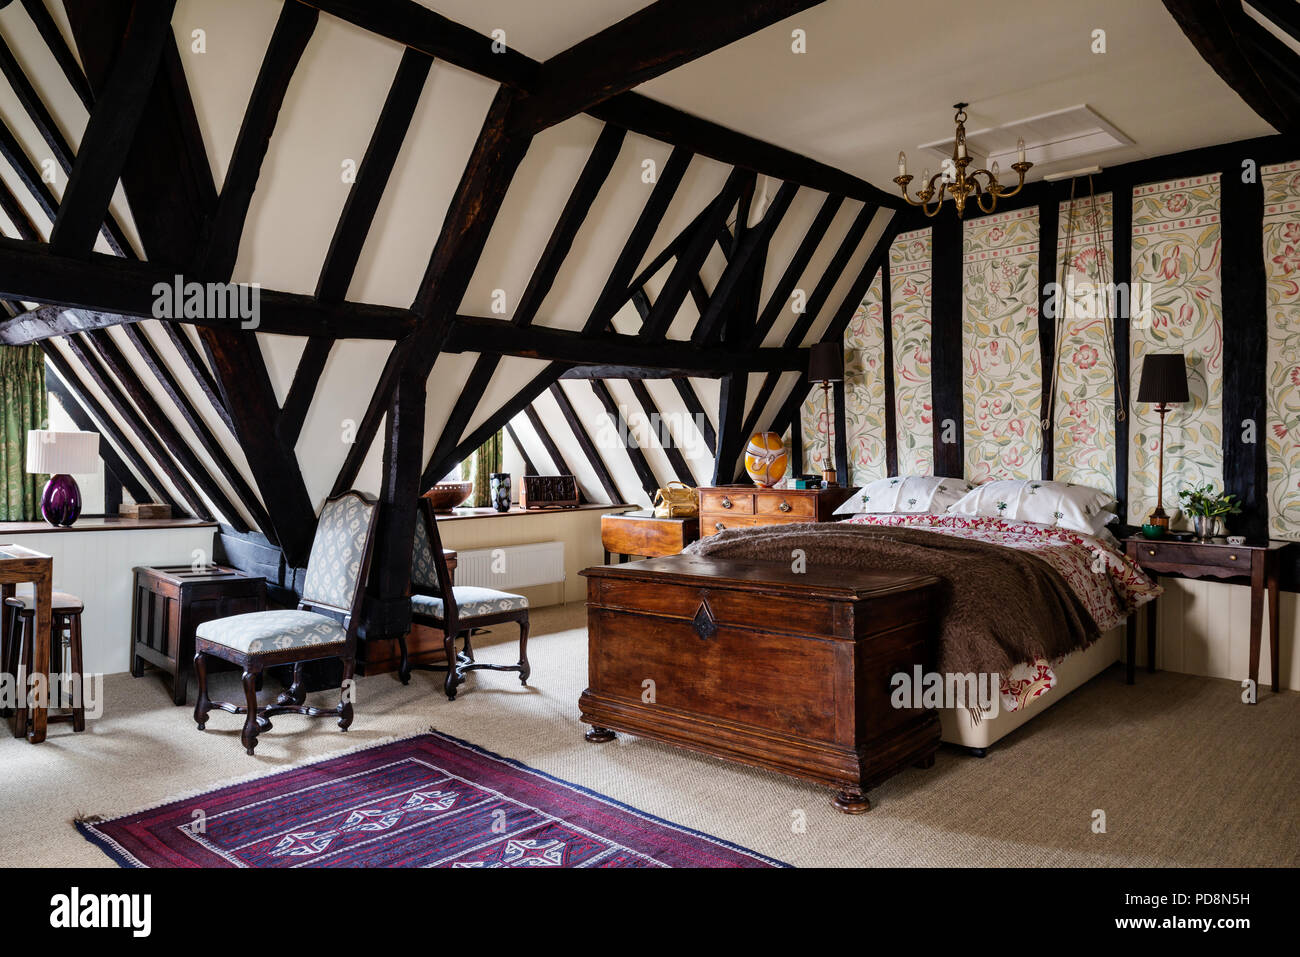 Timber framed bedroom with dormer windows and Tudor style floral motif - Stock Image